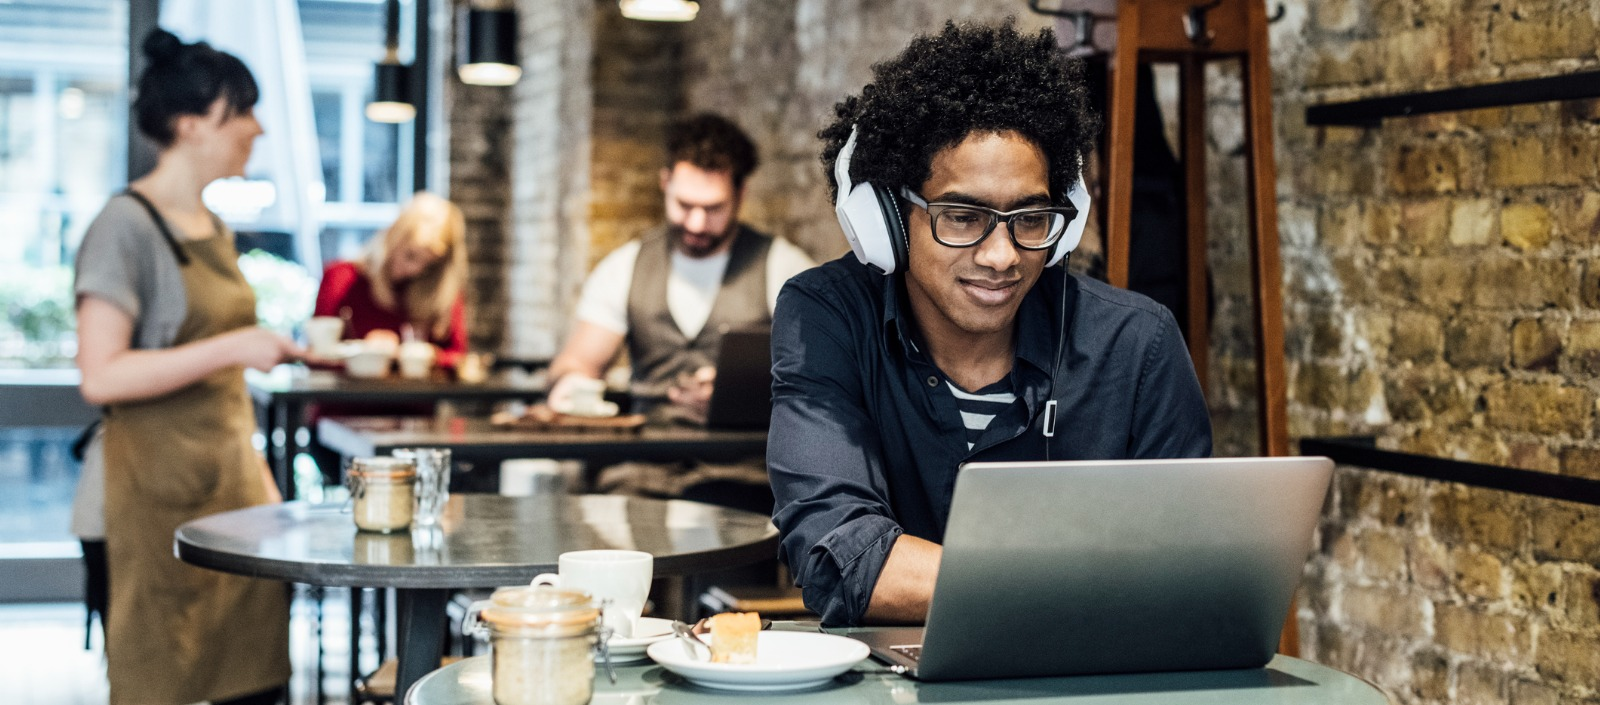 Gen Z man working remotely in a coffee shop as part of the gig economy